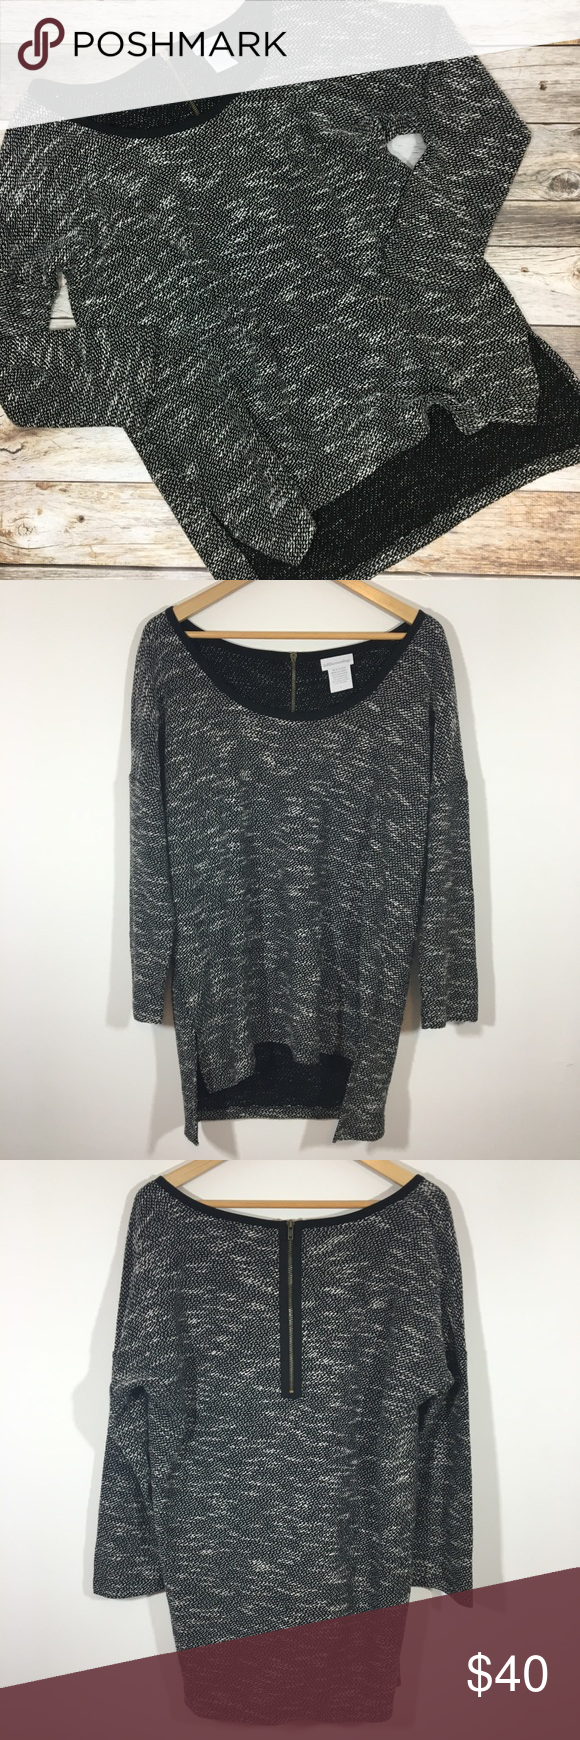 Soft Surroundings Marled Oversized Sweater Size L Soft ...